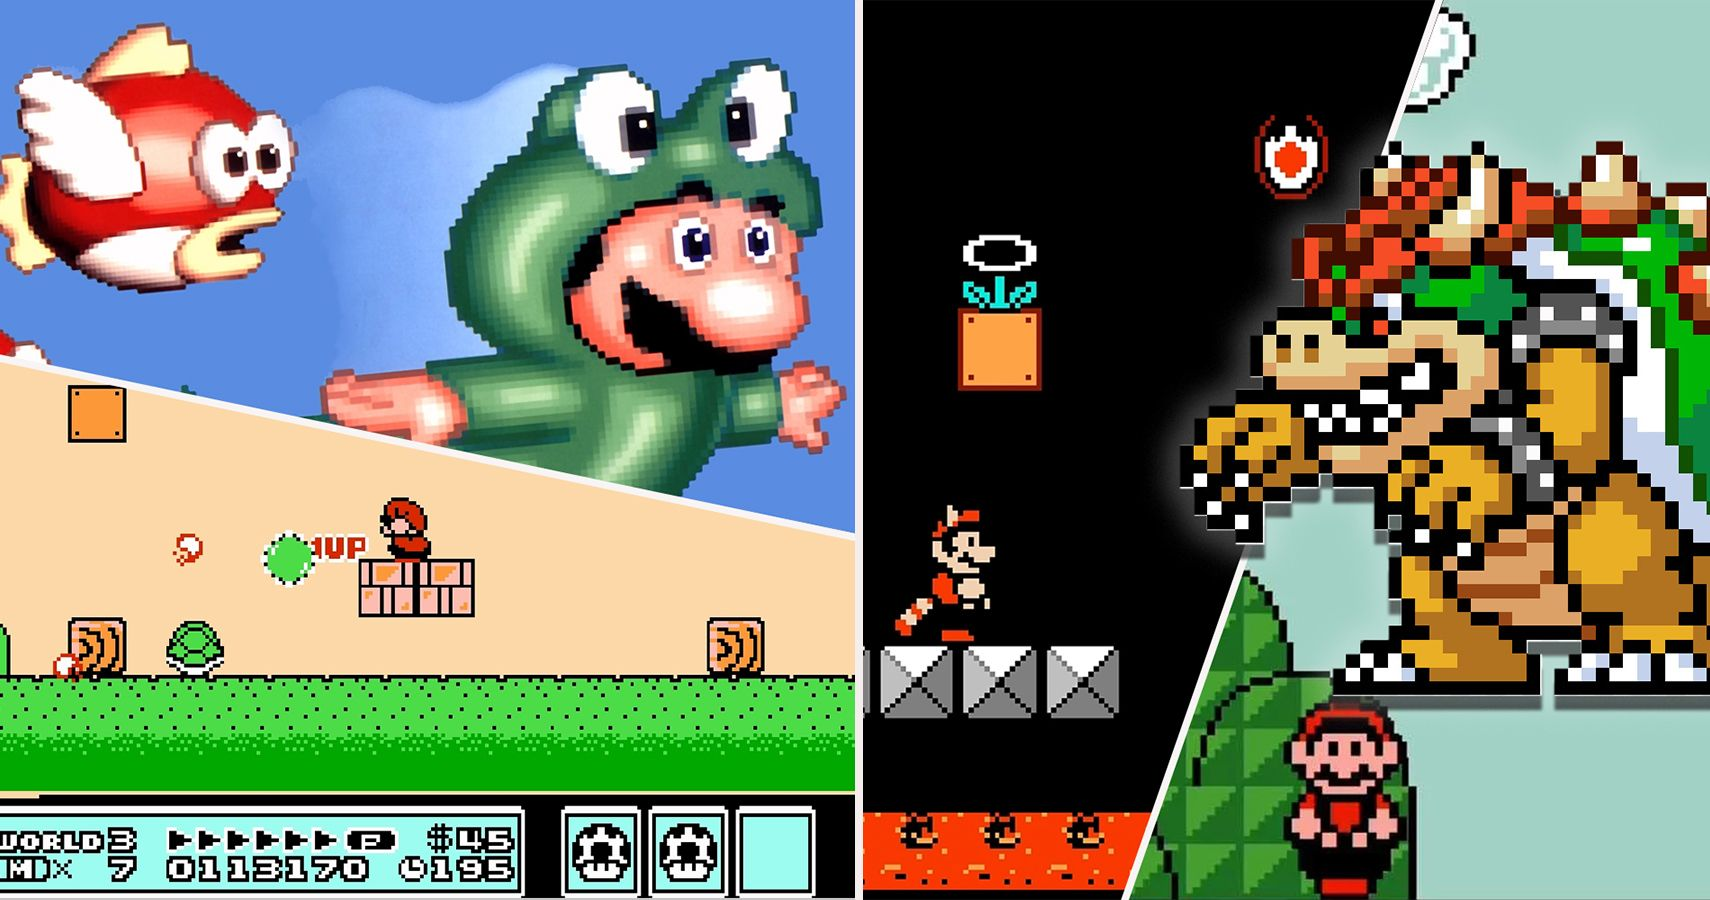 Super Mario Bros  3: 25 Tricks From The Game Players Have No Idea About